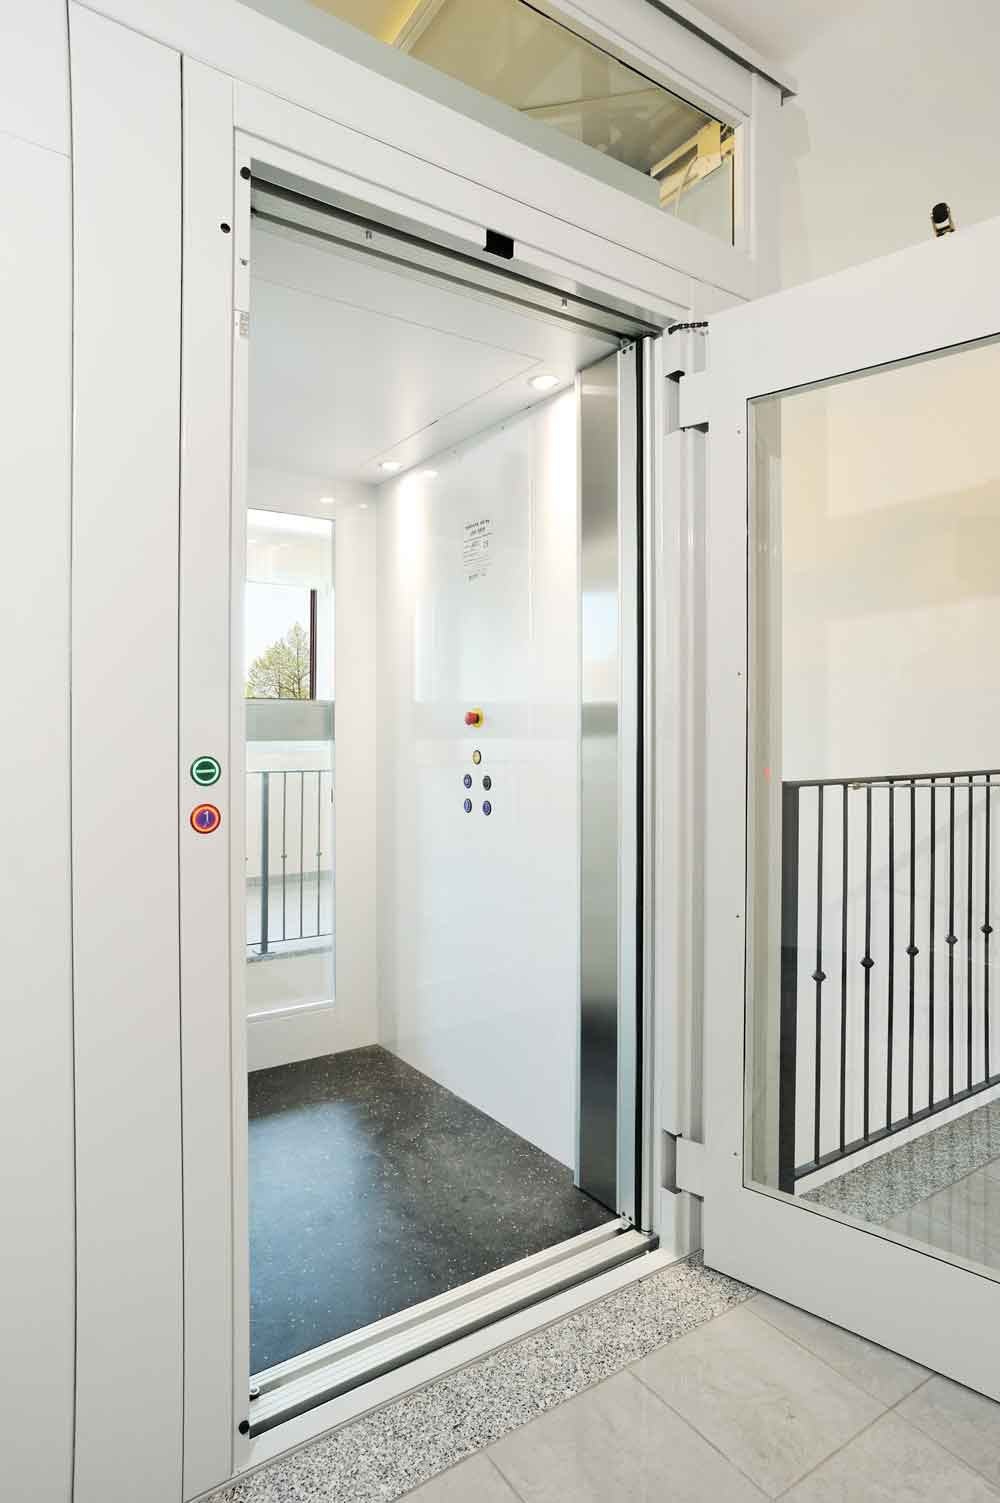 Cabin Lift With Automatic Sliding Doors By Xpress Lifts